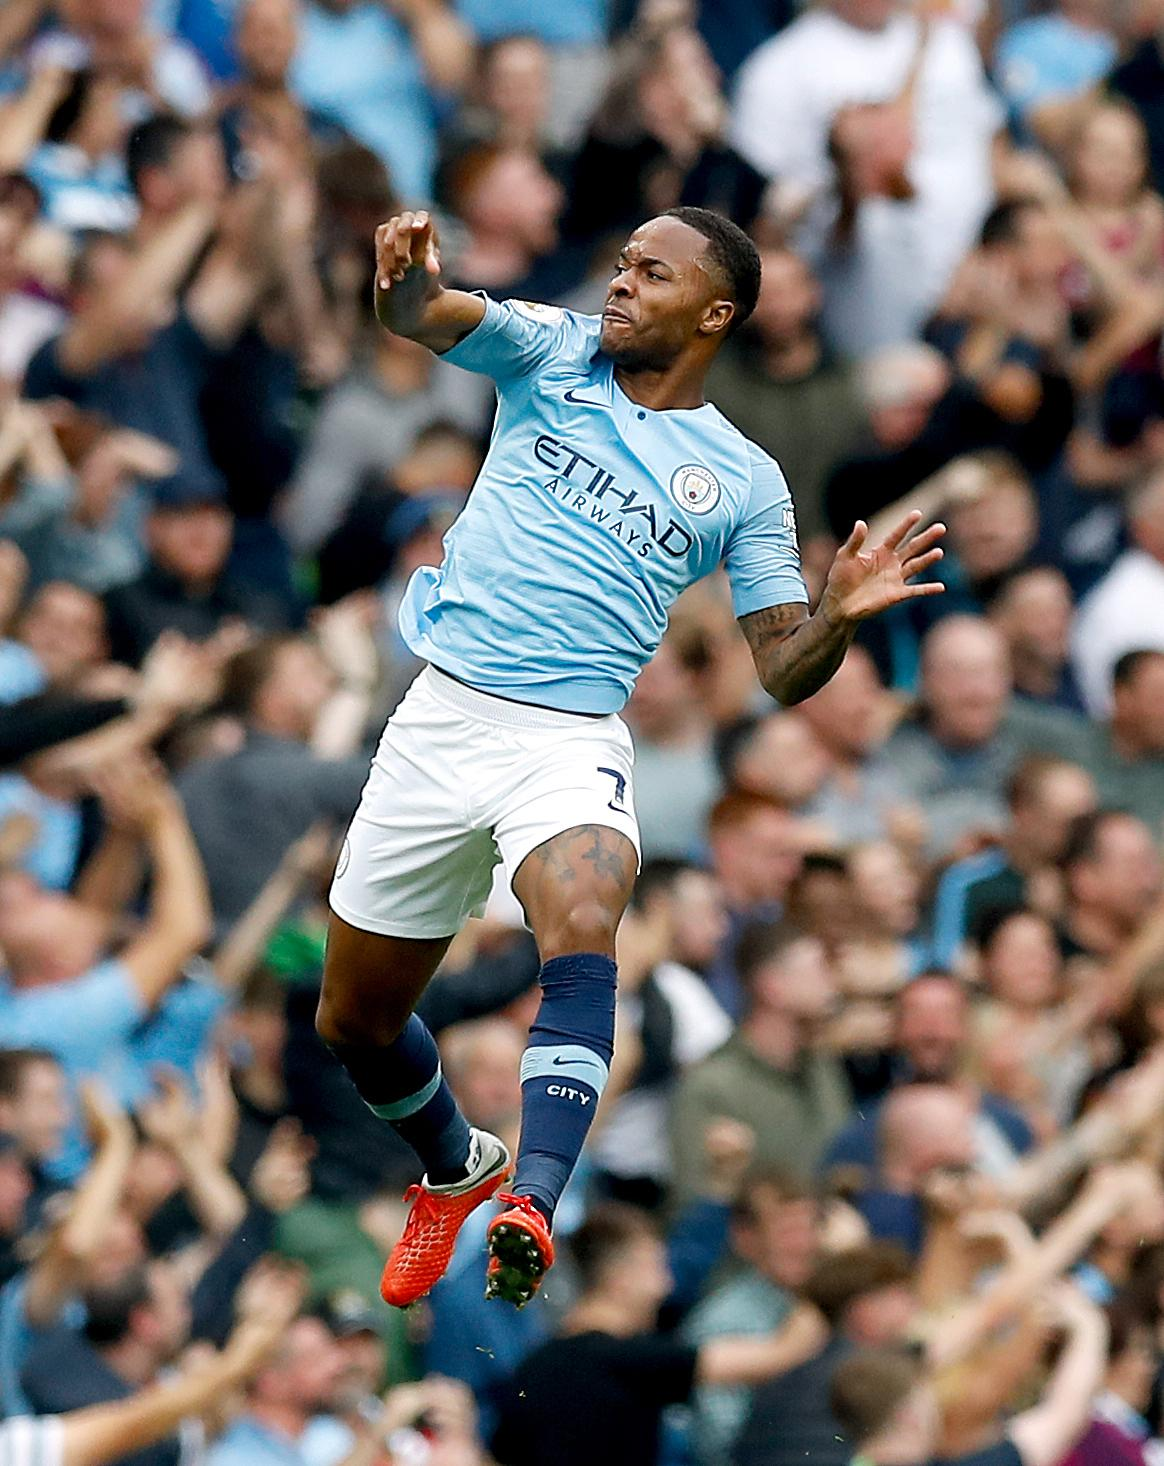 Real Madrid are keeping tabs on Raheem Sterling amidst contract stalemate